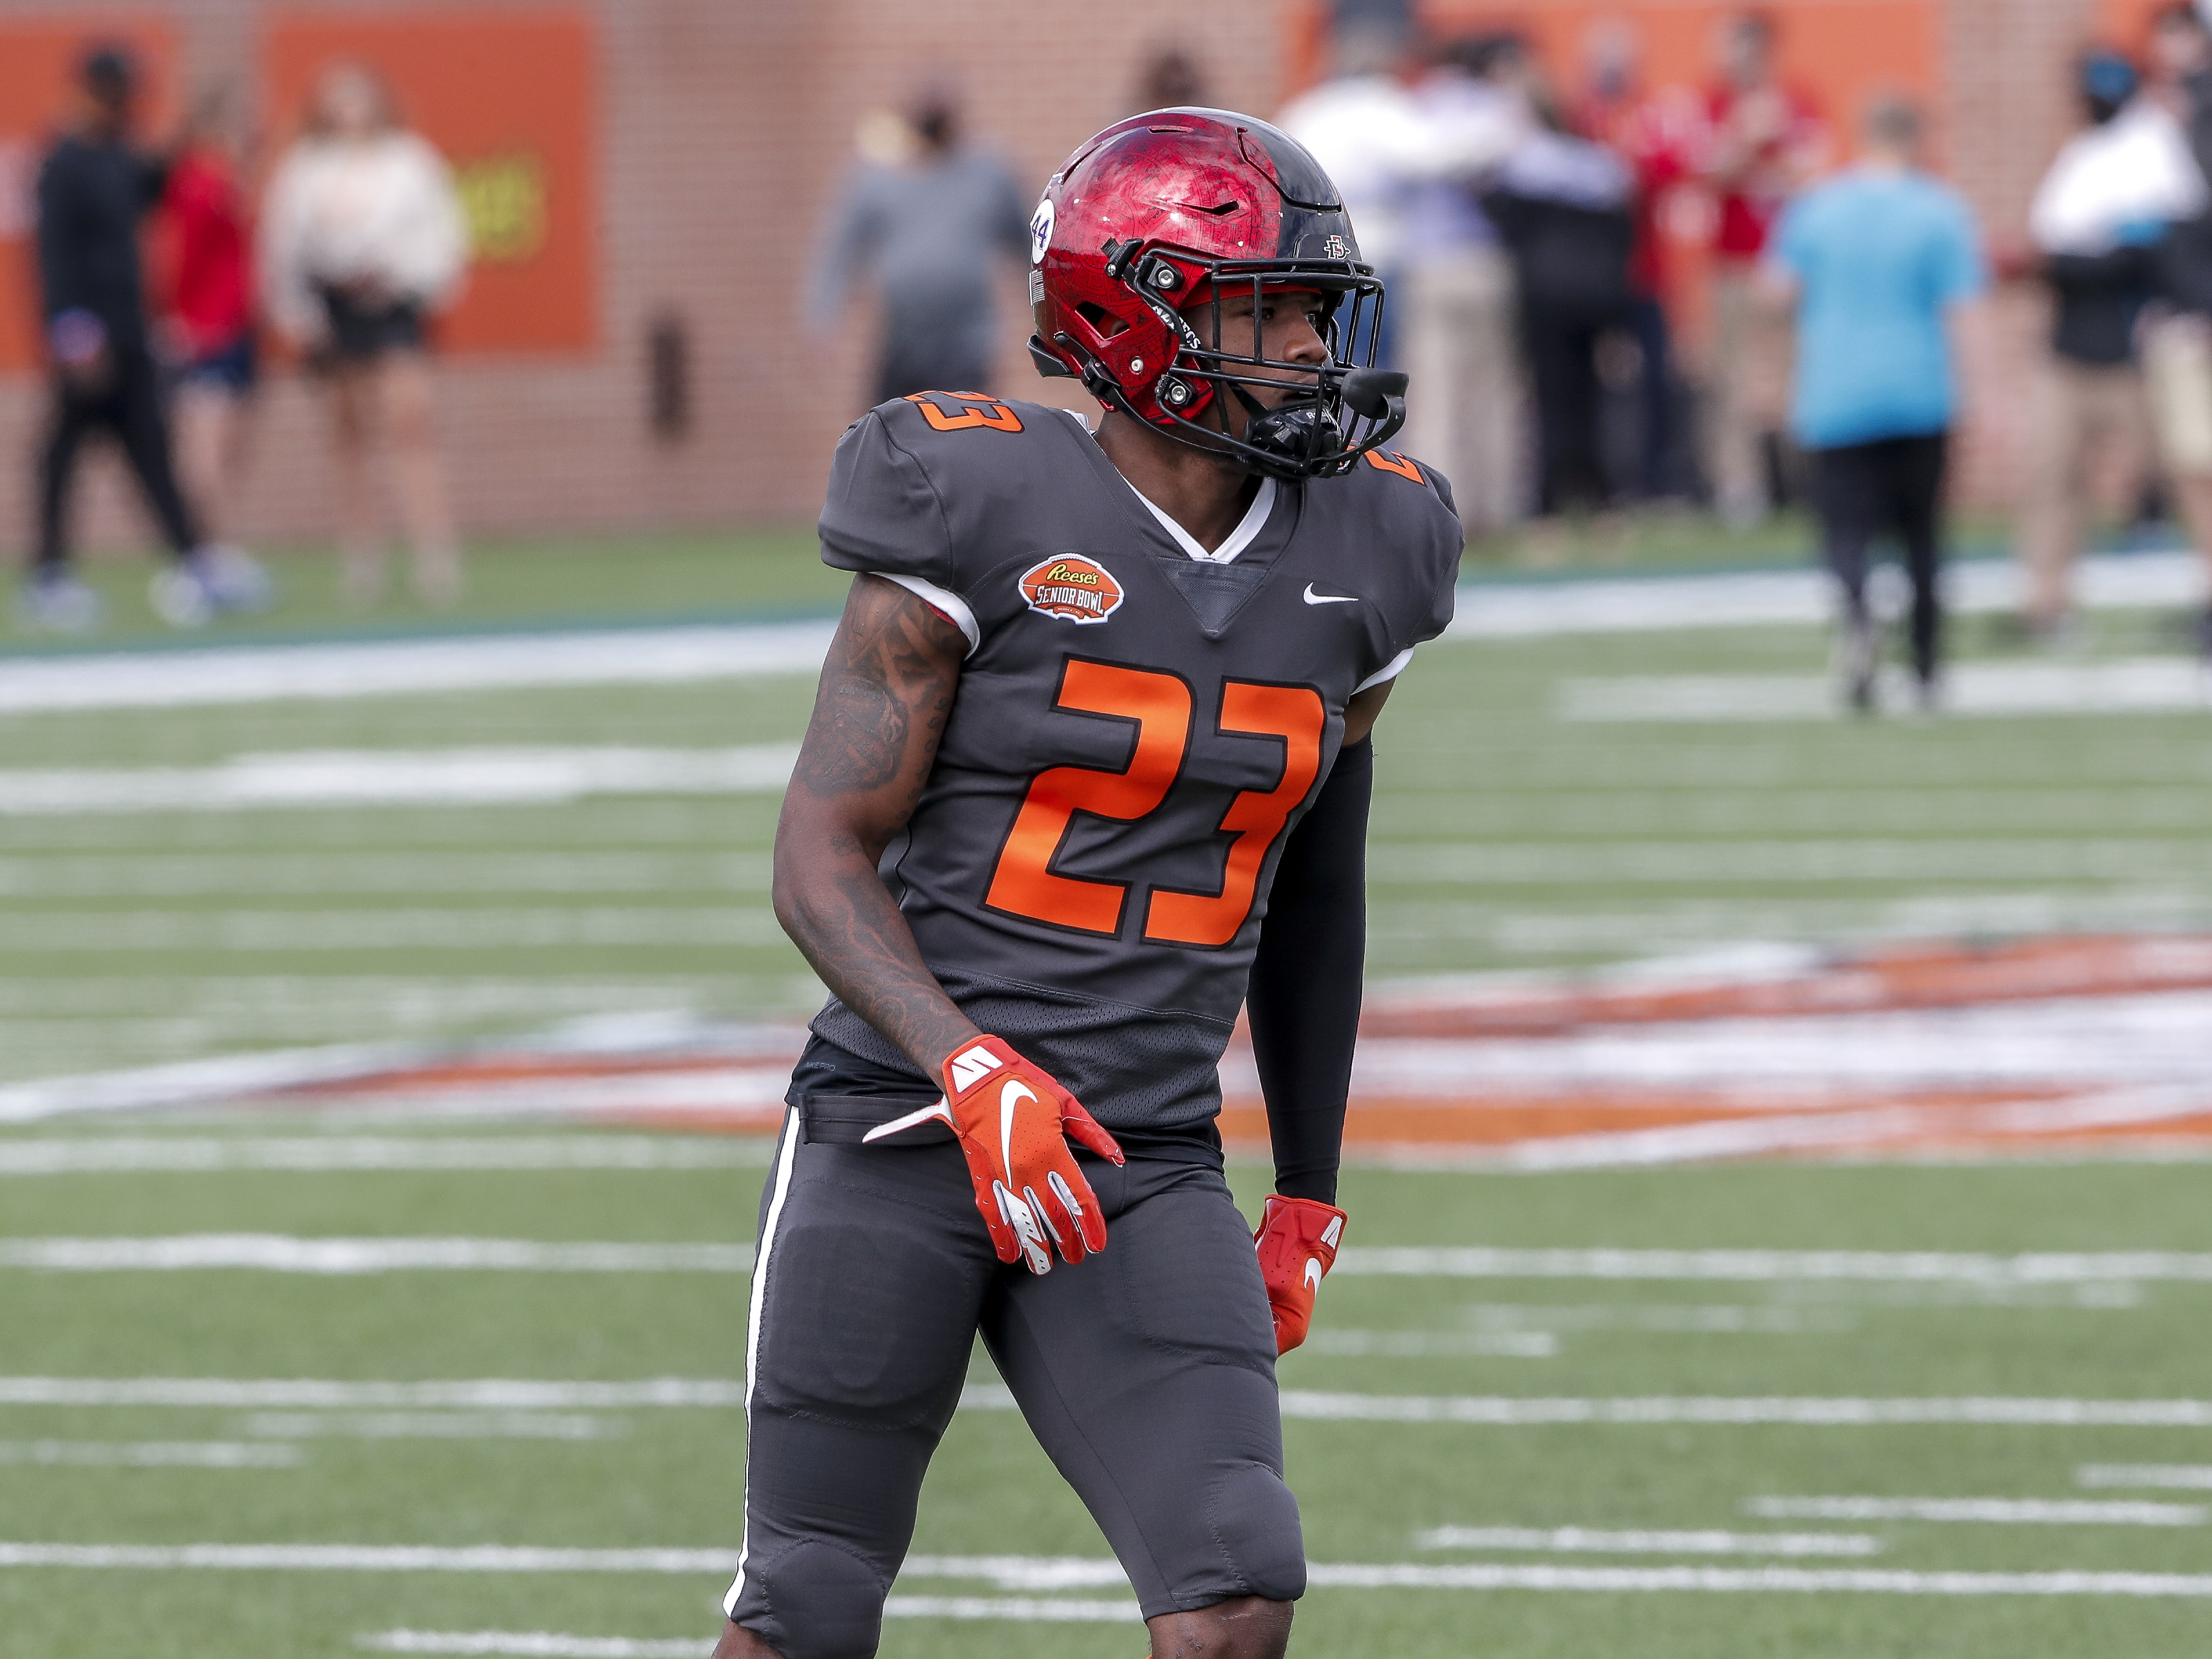 3 Small school sleepers Cleveland Browns should draft